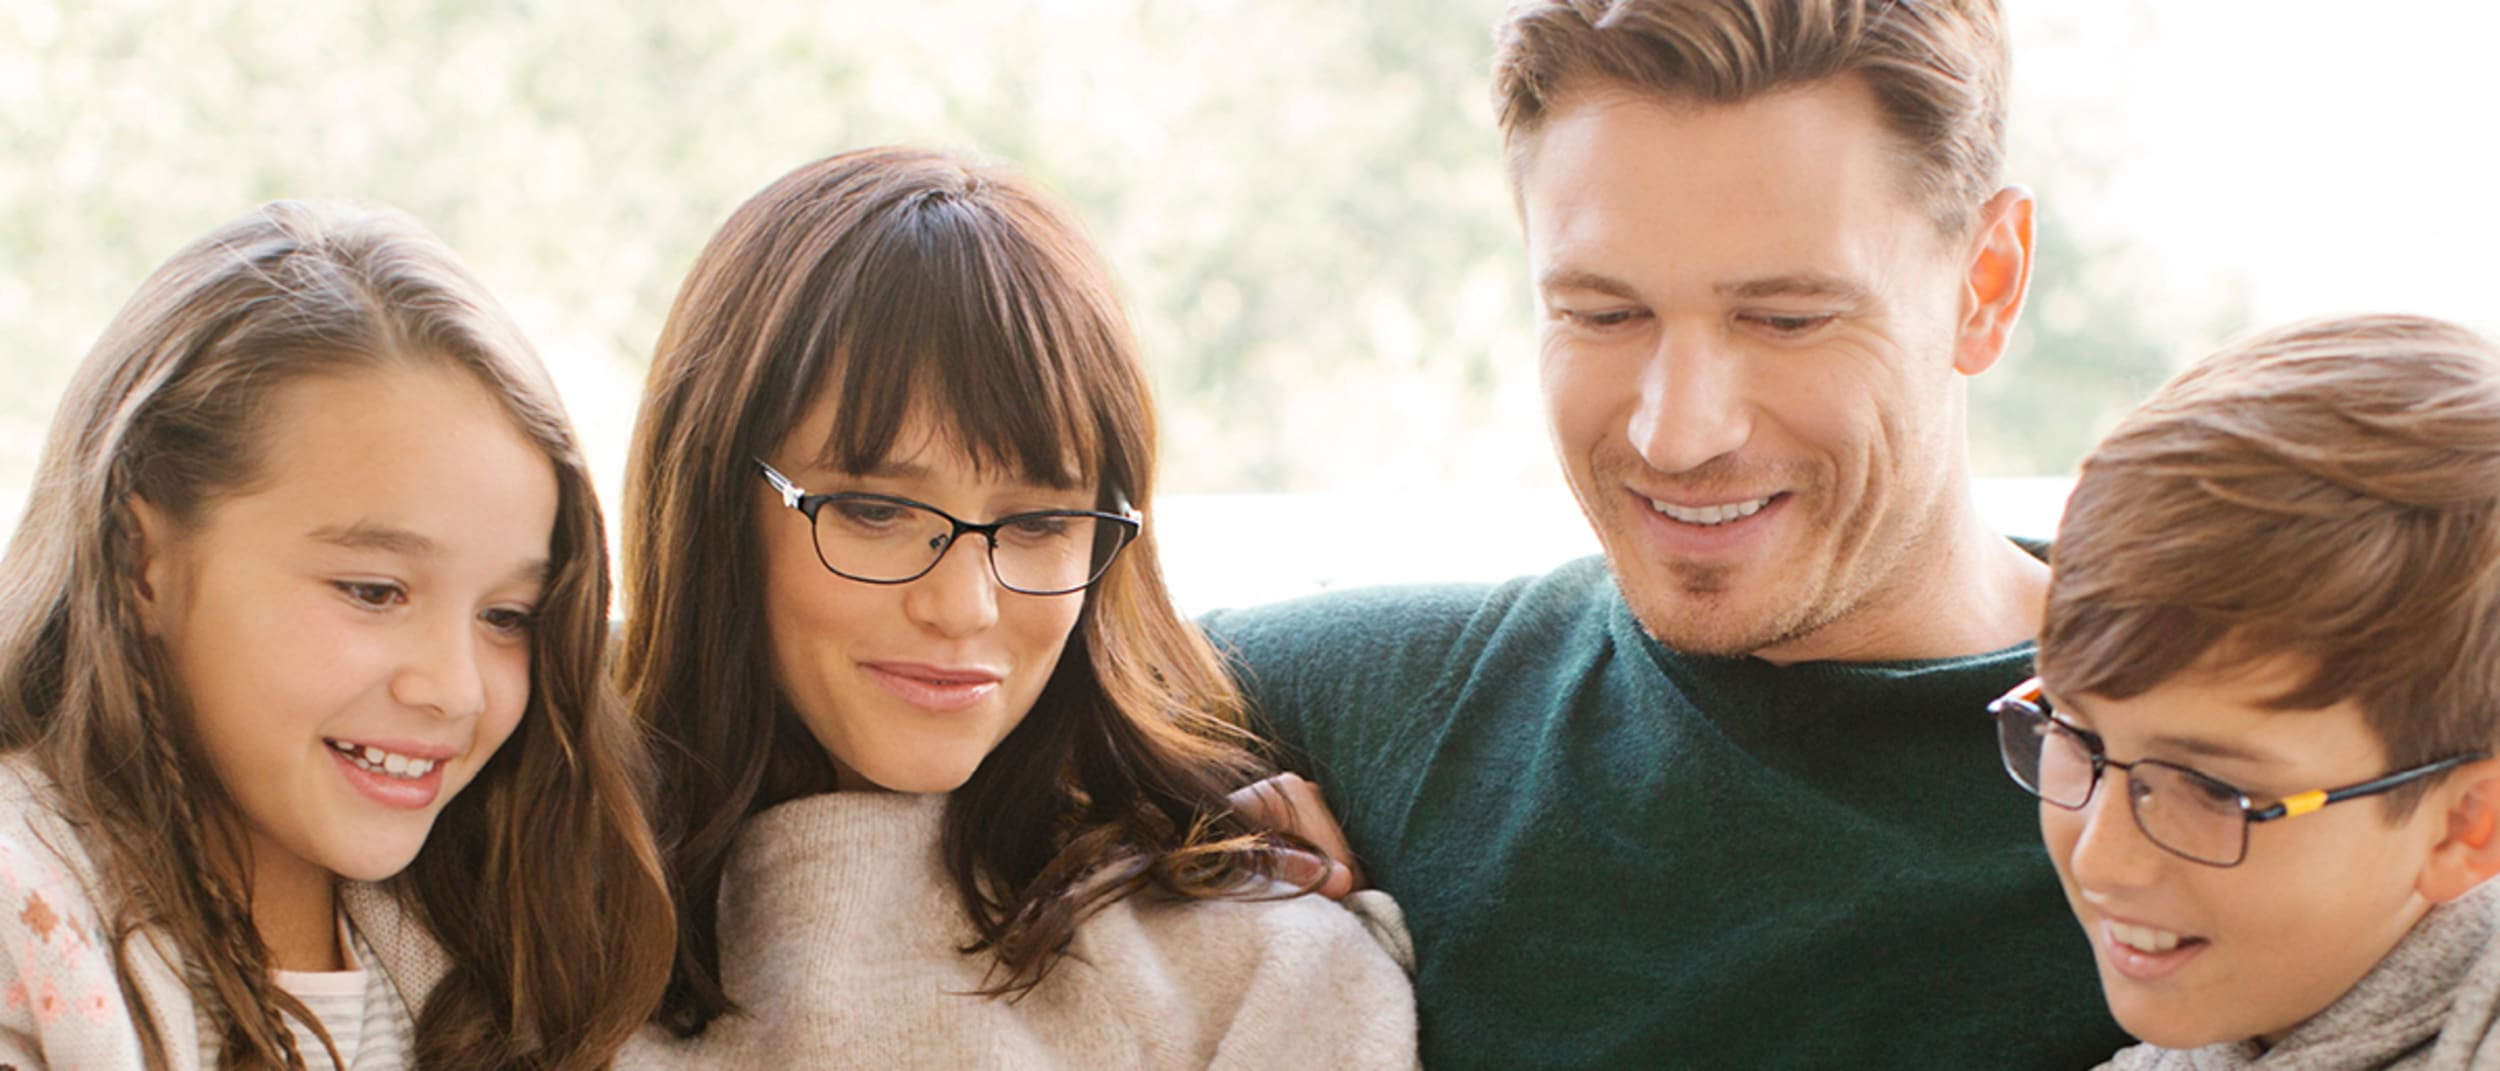 Laubman & Pank: Up to 50% off prescription glasses and sunglasses